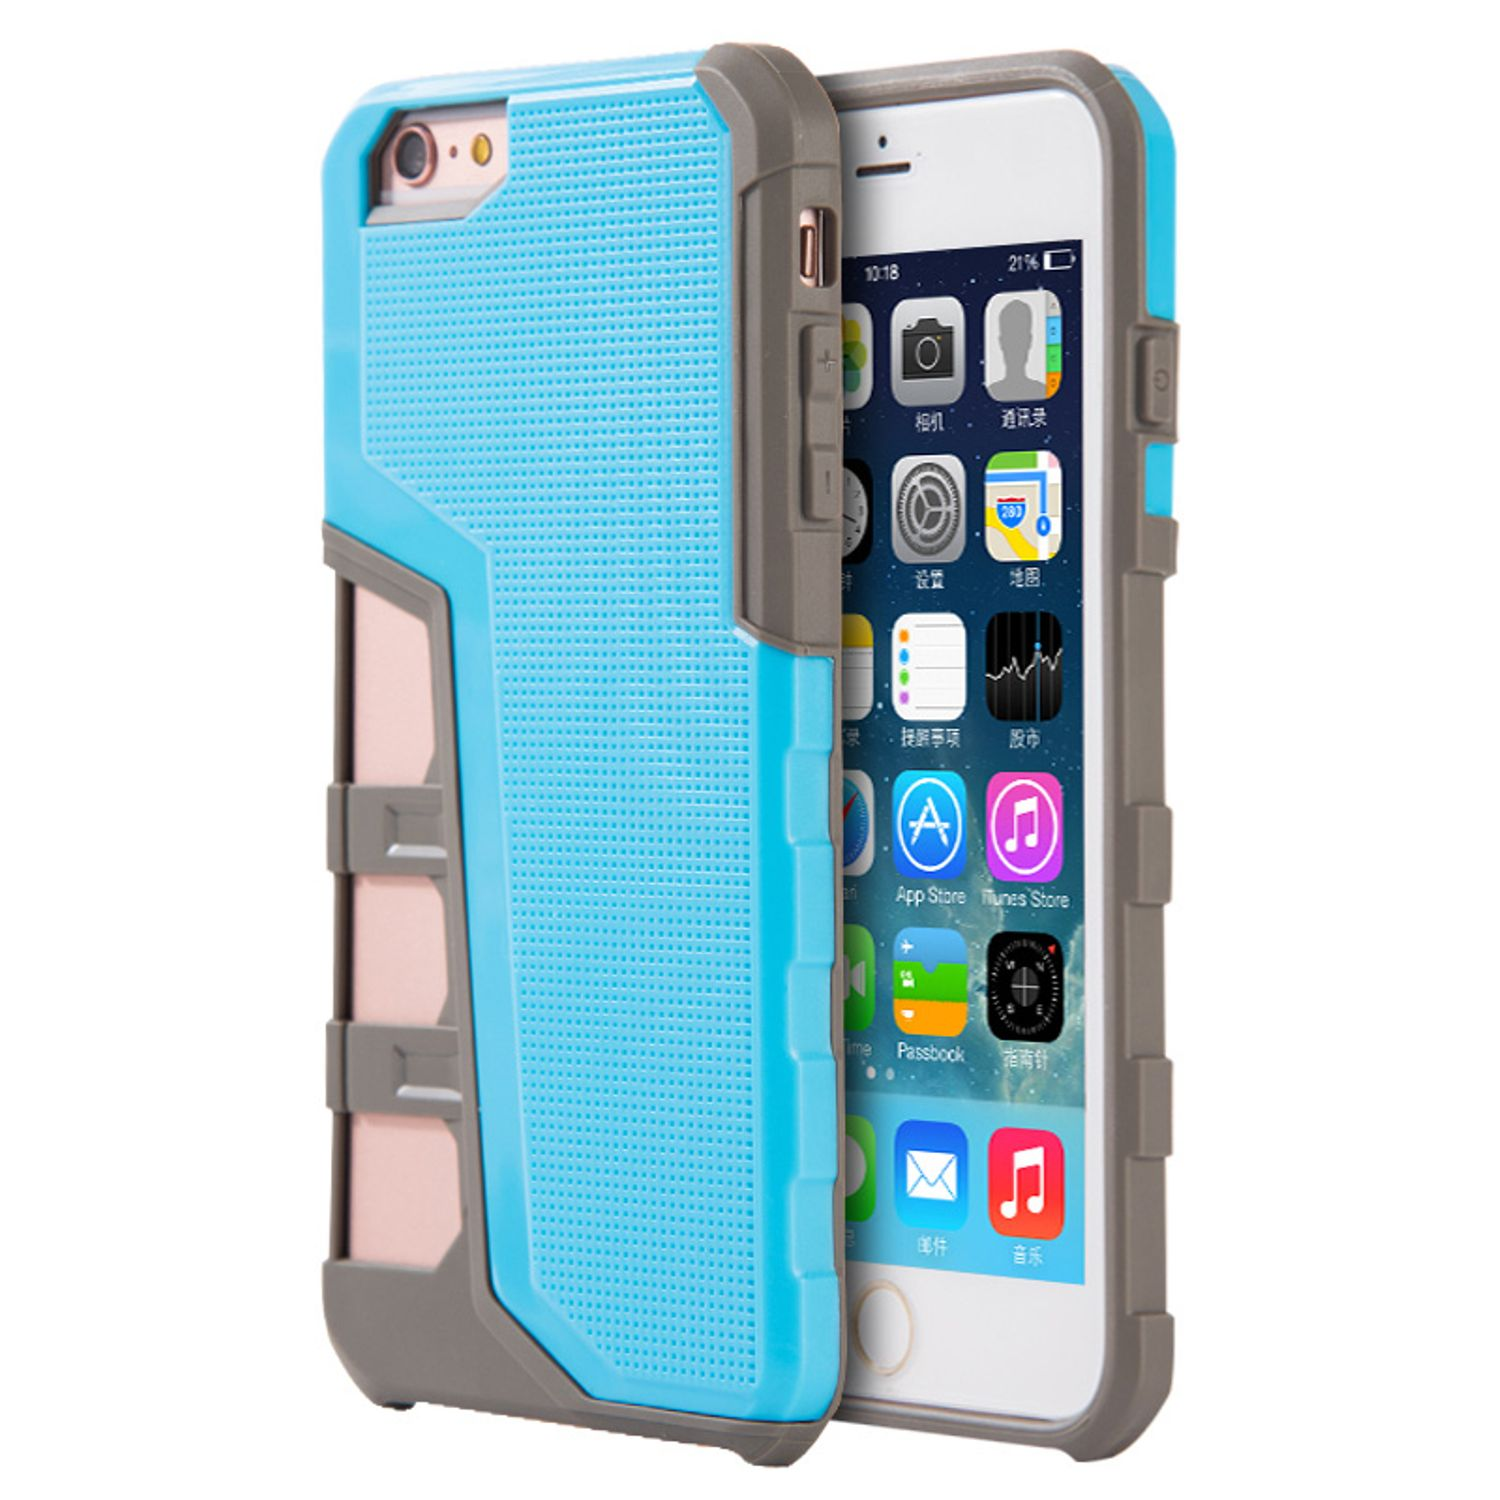 Insten Hard Hybrid TPU Cover Case For Apple iPhone 6s Plus / 6 Plus - Light Blue/Gray